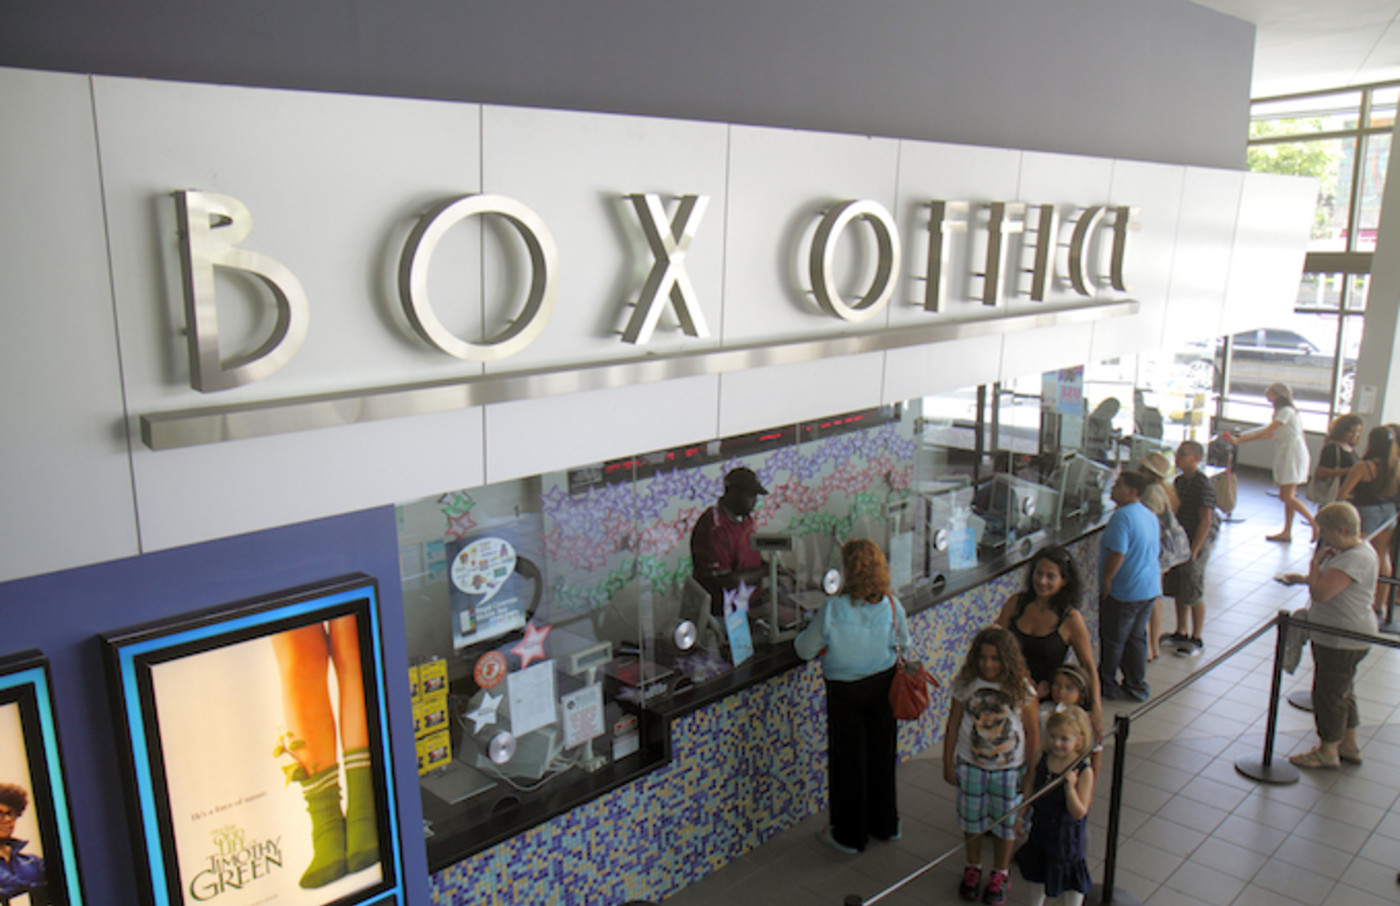 A box office at a movie theater.